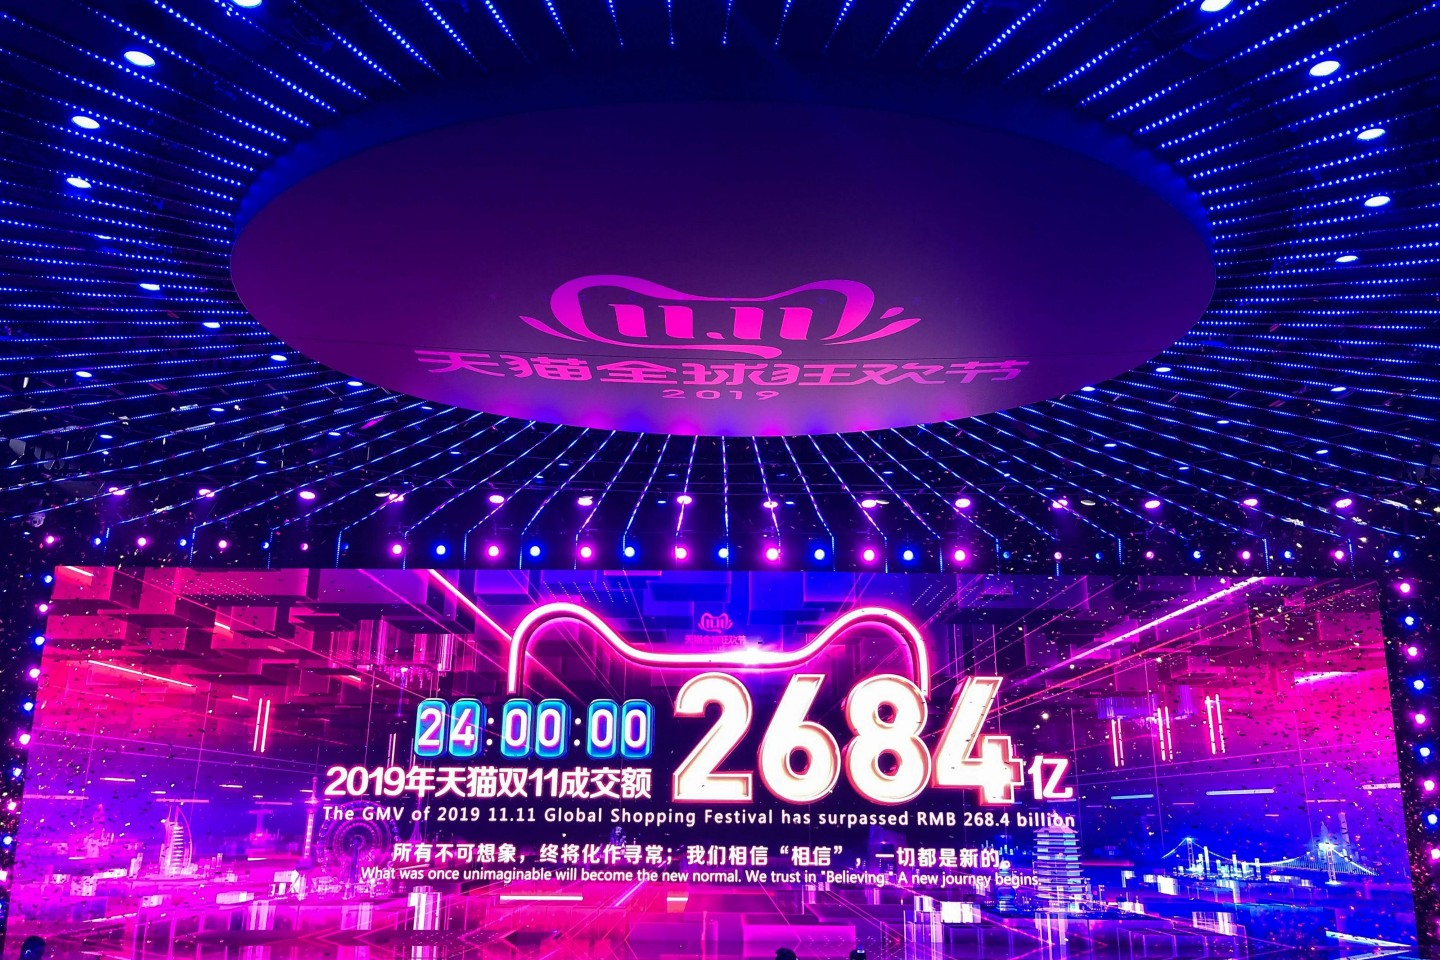 A screen shows the final sales figures, after 24 hours of Singles' Day sales, at over 38.3 billion USD shortly after the end of the 11.11, in Hangzhou in China's eastern Zhejiang province early on November 12, 2019. (STR/AFP)